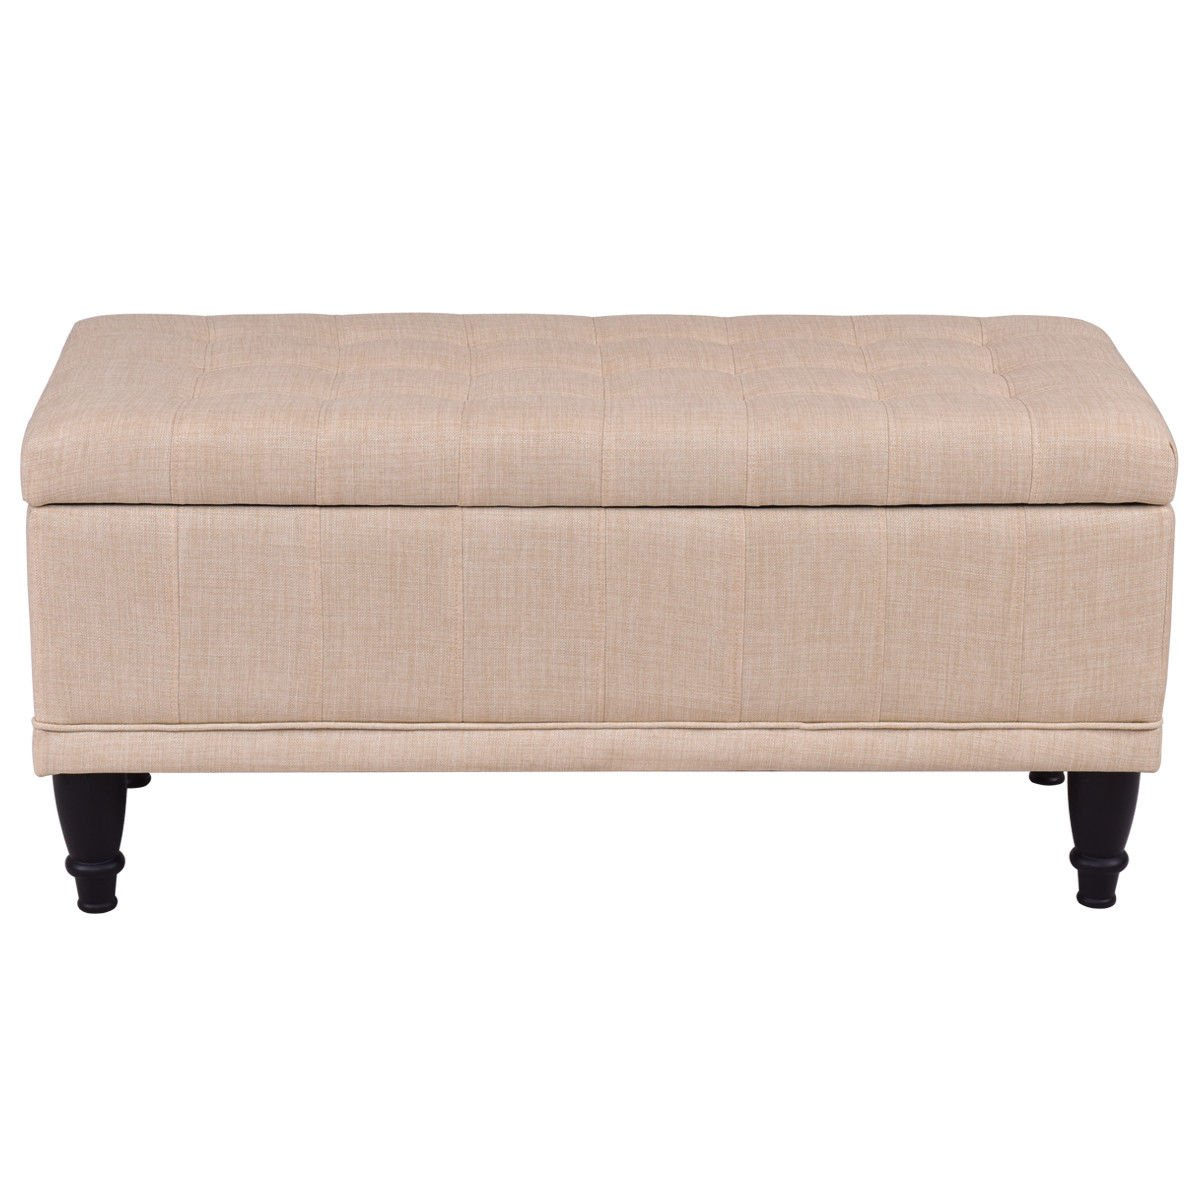 """Giantex 42"""" Fabric Tufted Storage Ottoman Bench Lift Top Storage Bench With Solid Wood Legs (Beige) by Giantex (Image #5)"""